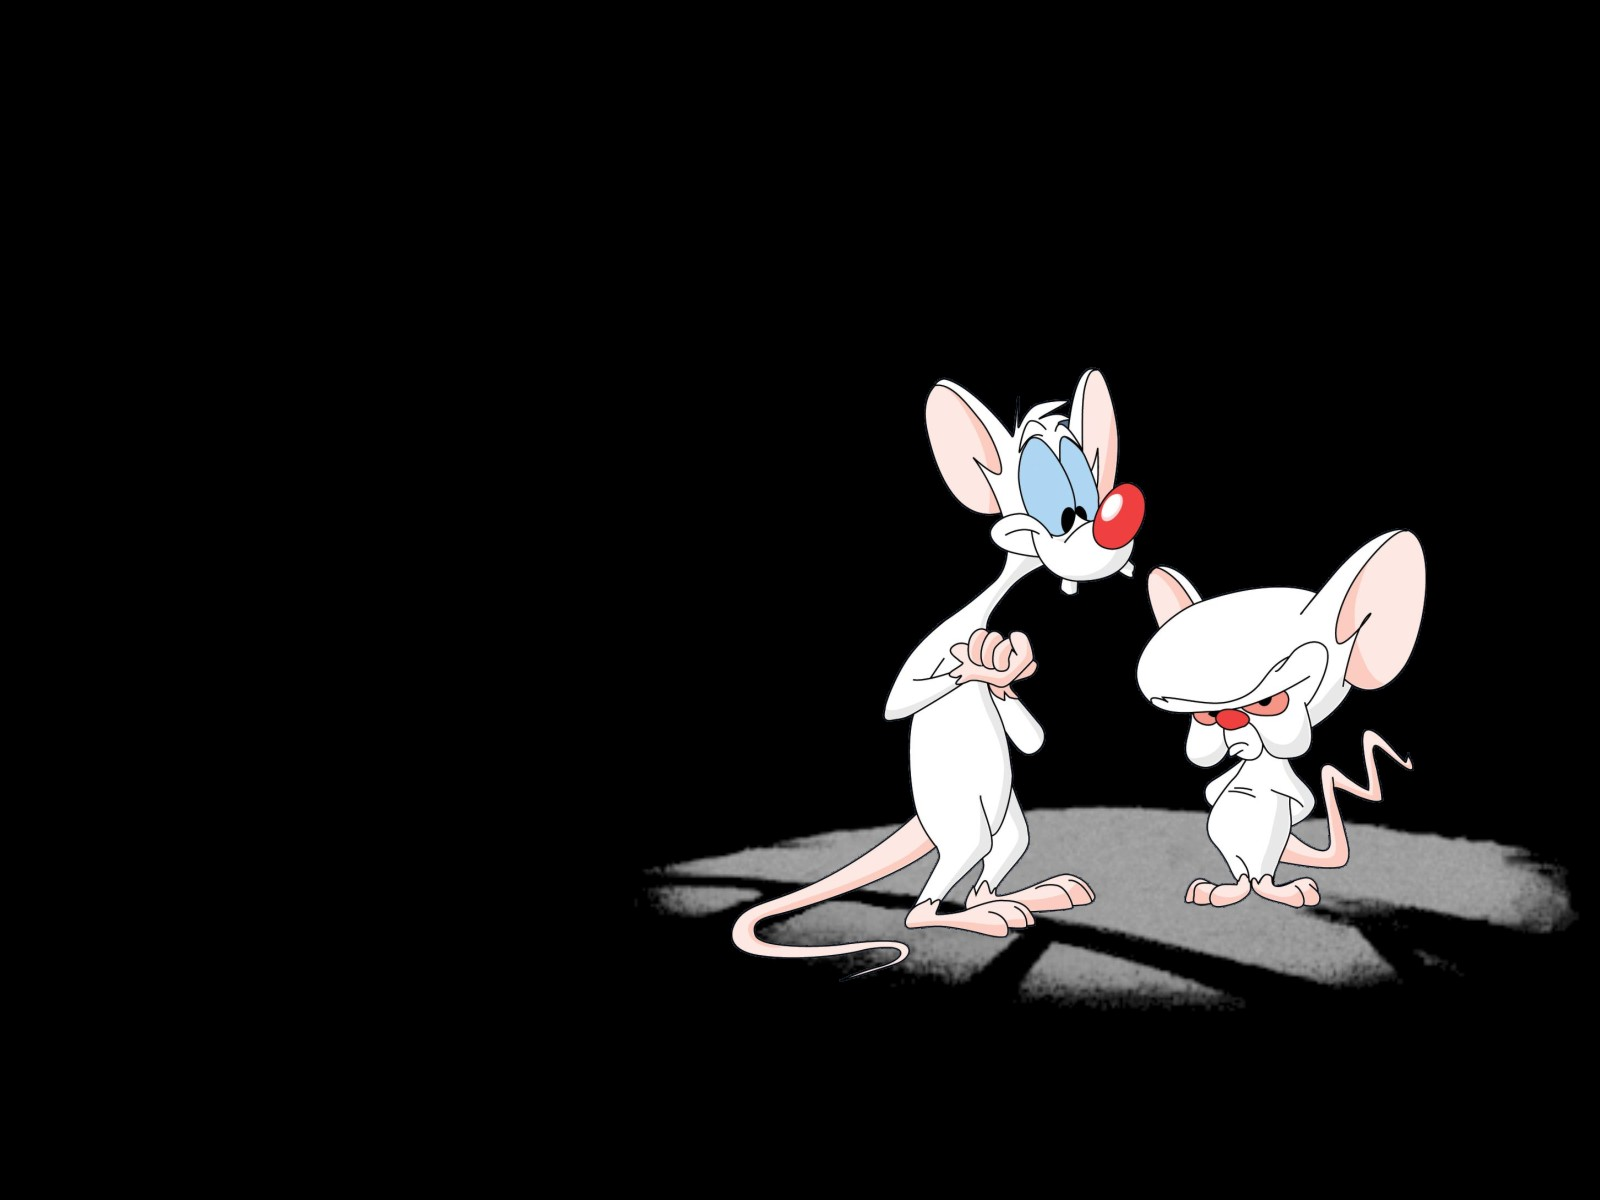 Pinky and the Brain Wallpapers | Wallpaperholic